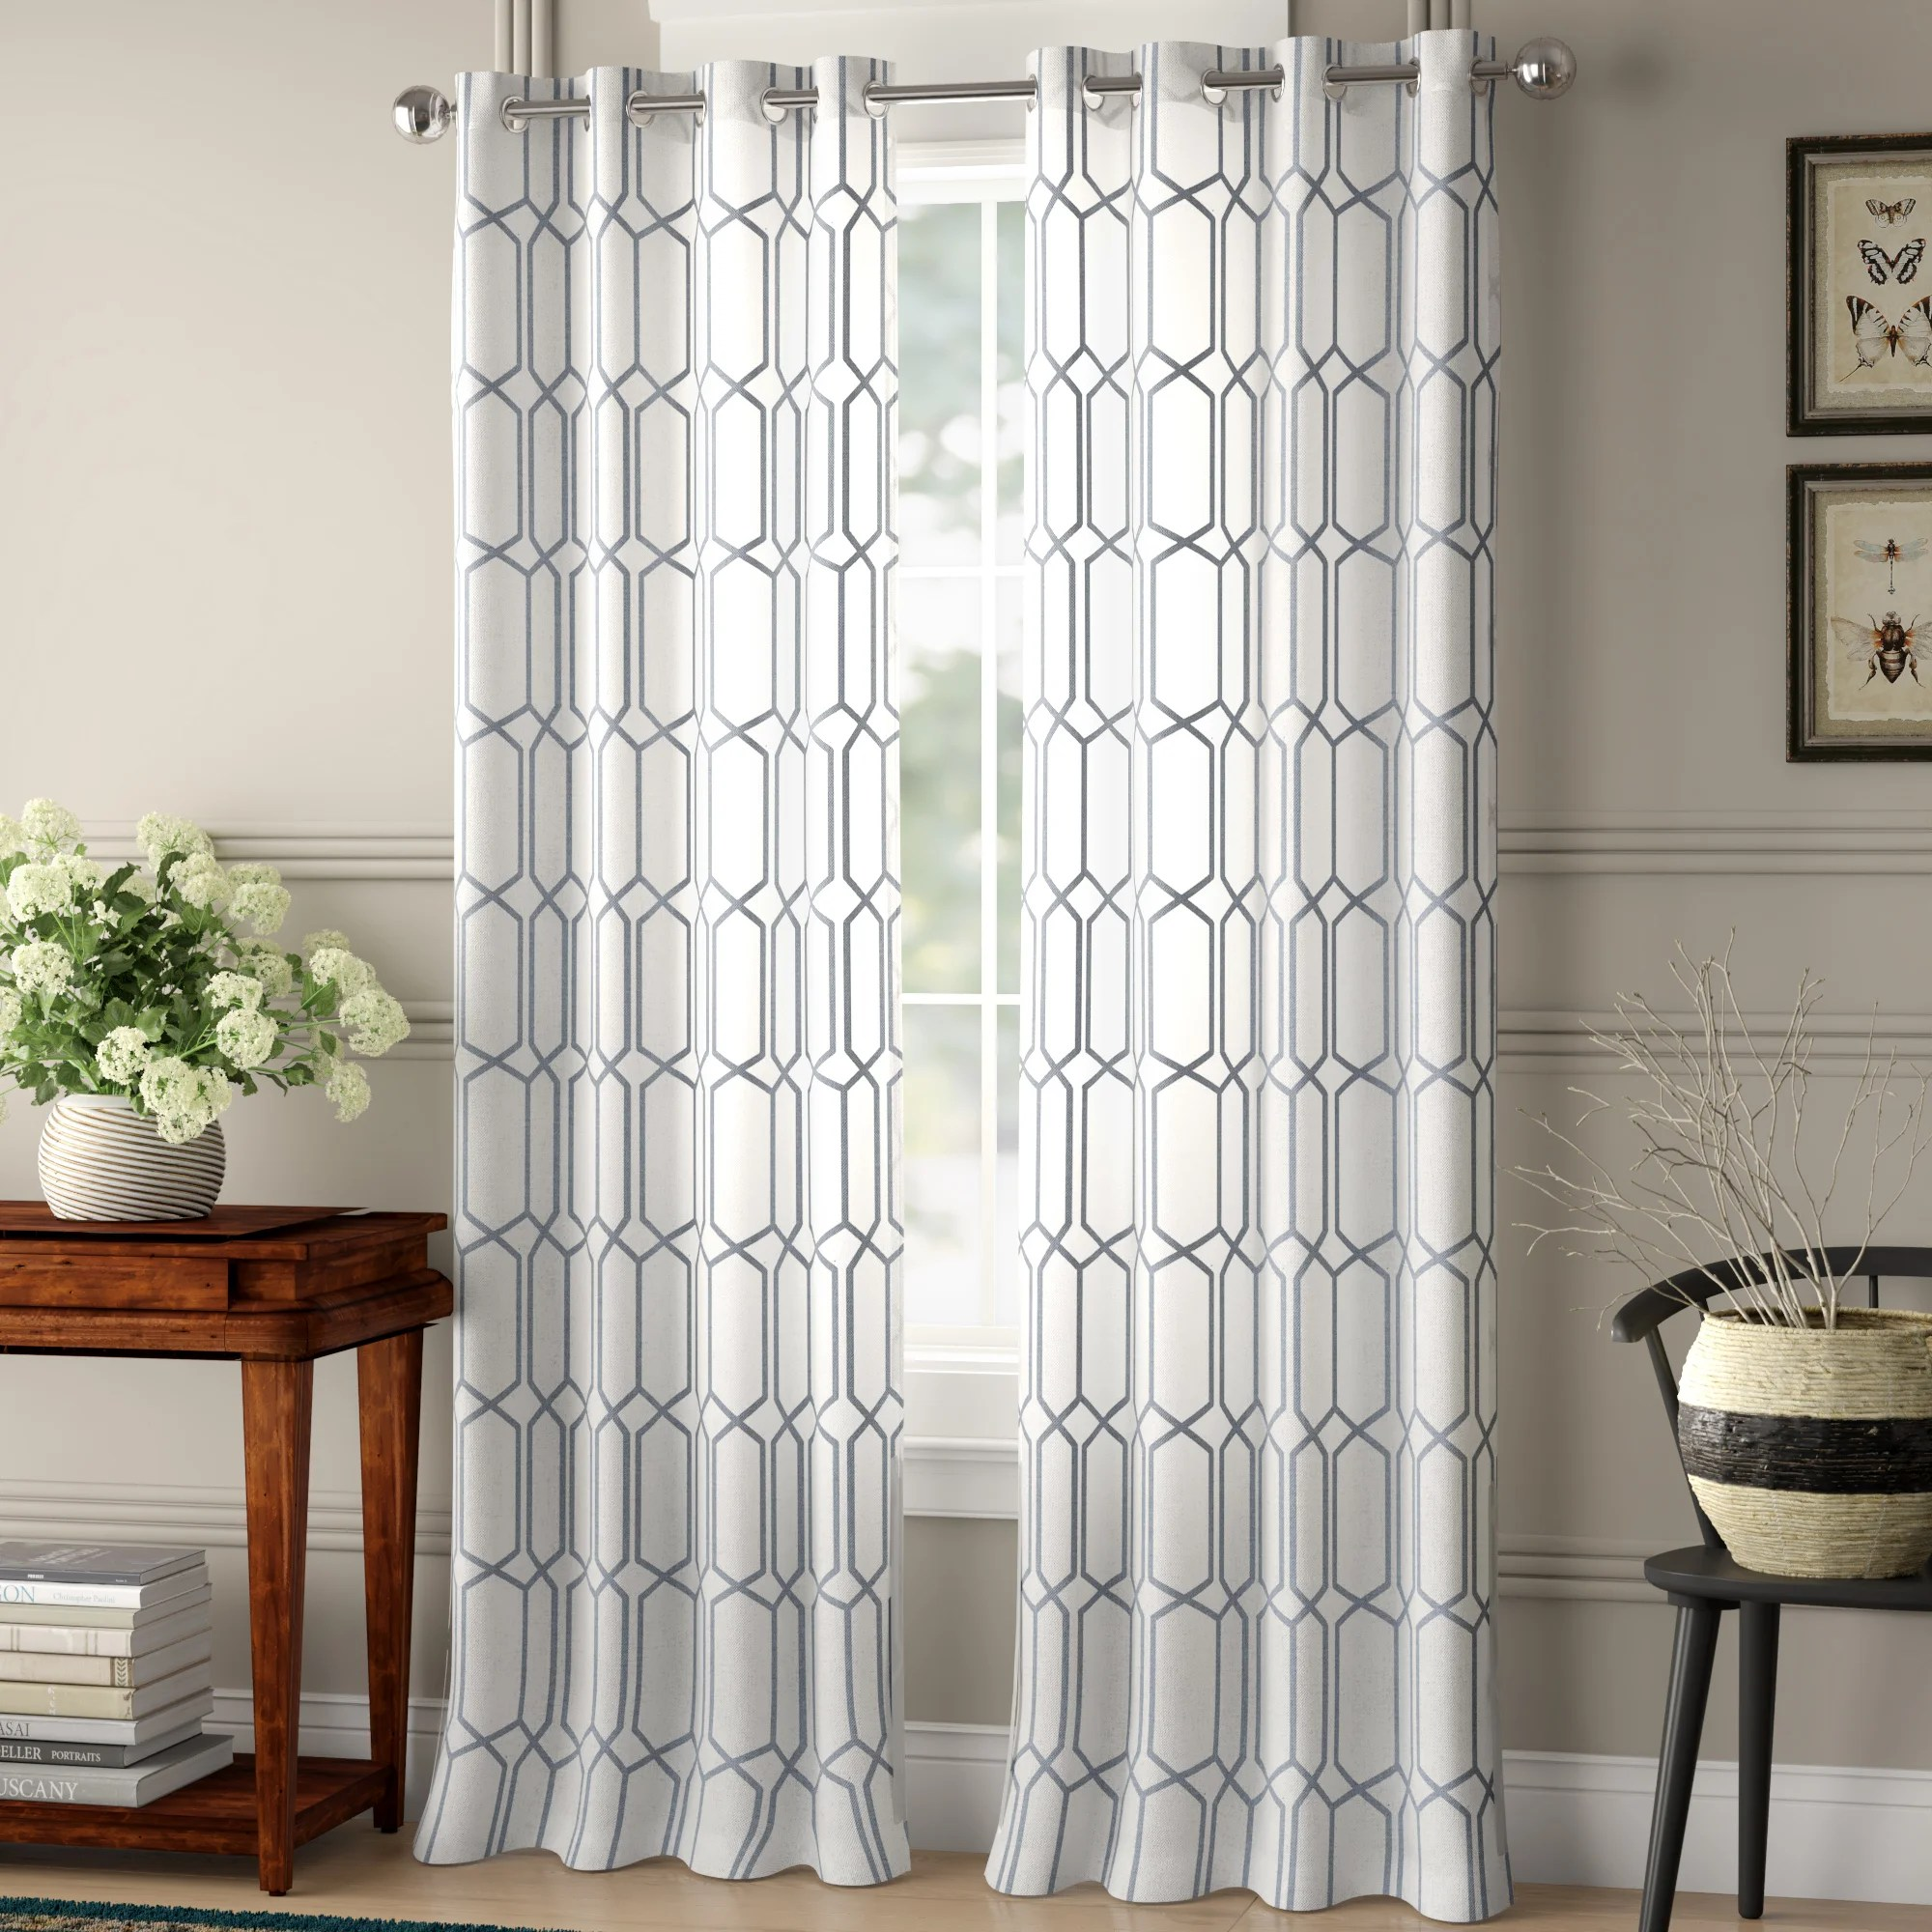 Farmhouse Rustic Thermal Insulation Curtains Drapes Birch Lane